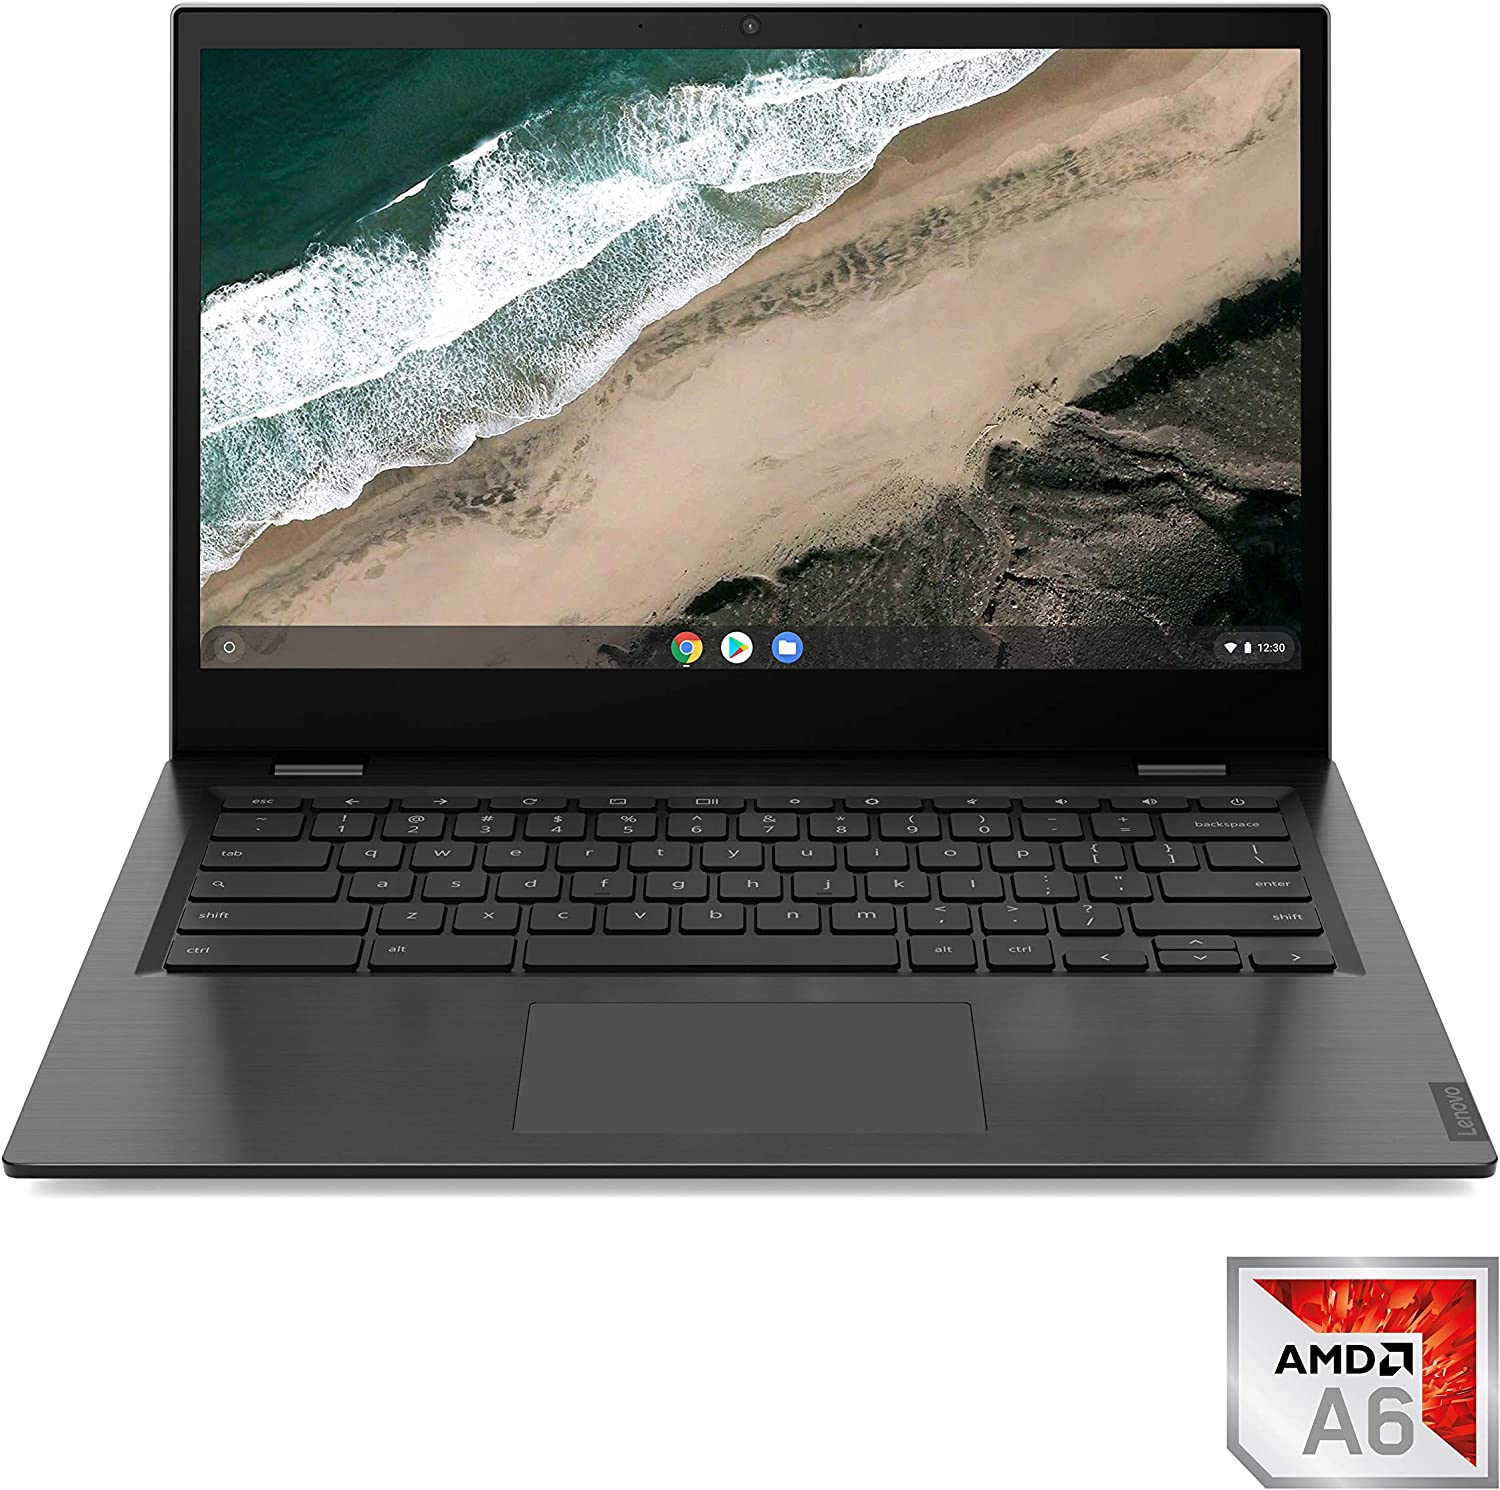 "Lenovo Chromebook S345 Laptop, 14.0"" FHD (1920 x 1080) Display, AMD A6-9220c Processor, 4GB DDR4 OnBoard RAM, 32GB SSD, AMD Radeon R5 Graphics, Chrome OS, 81WX0001US, Platinum Grey"